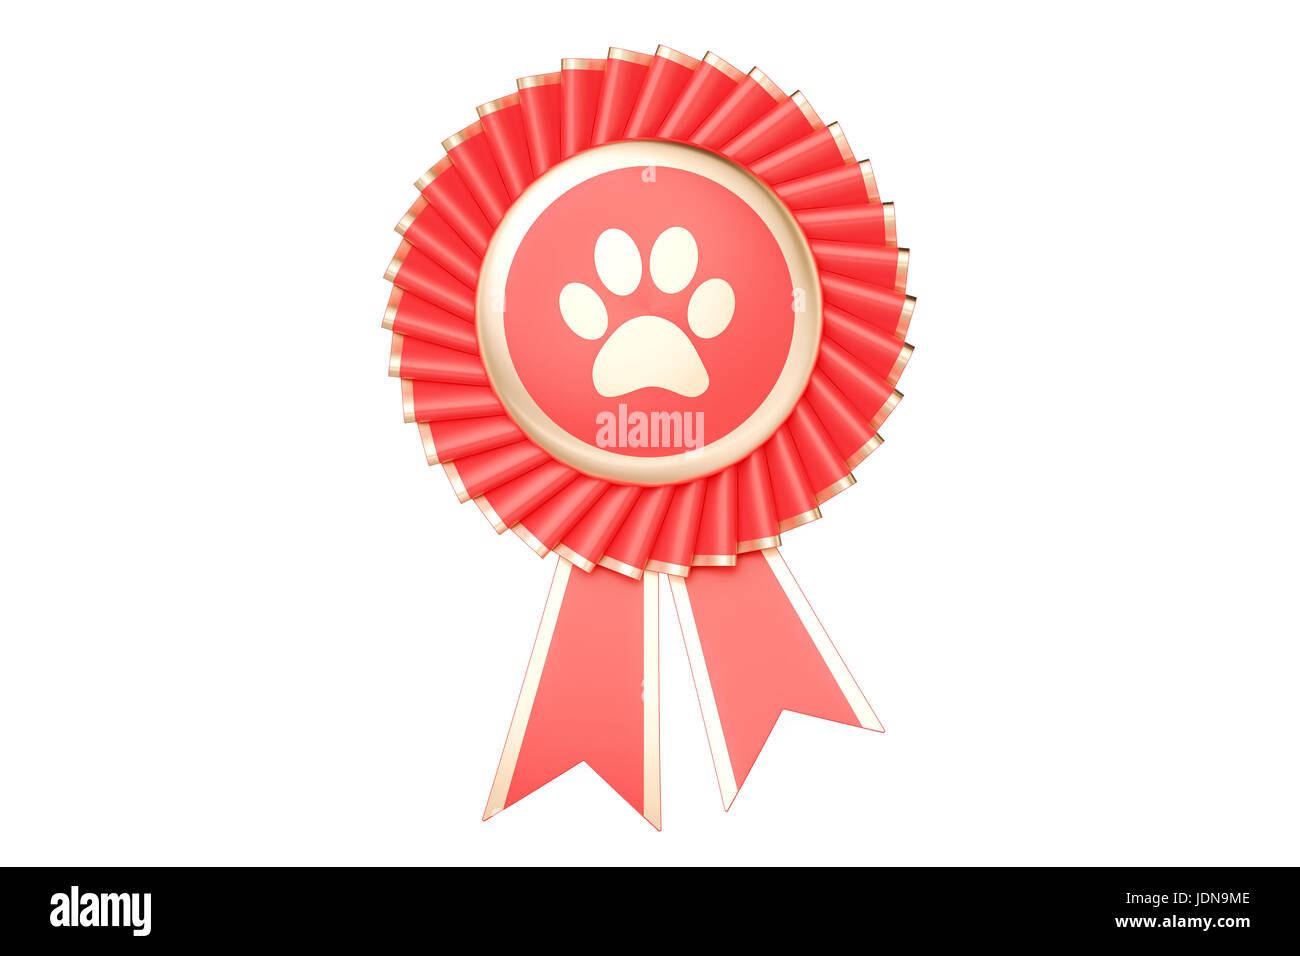 Dog or cat winning award, prize, medal or badge with ribbons. 3D rendering - Stock Image